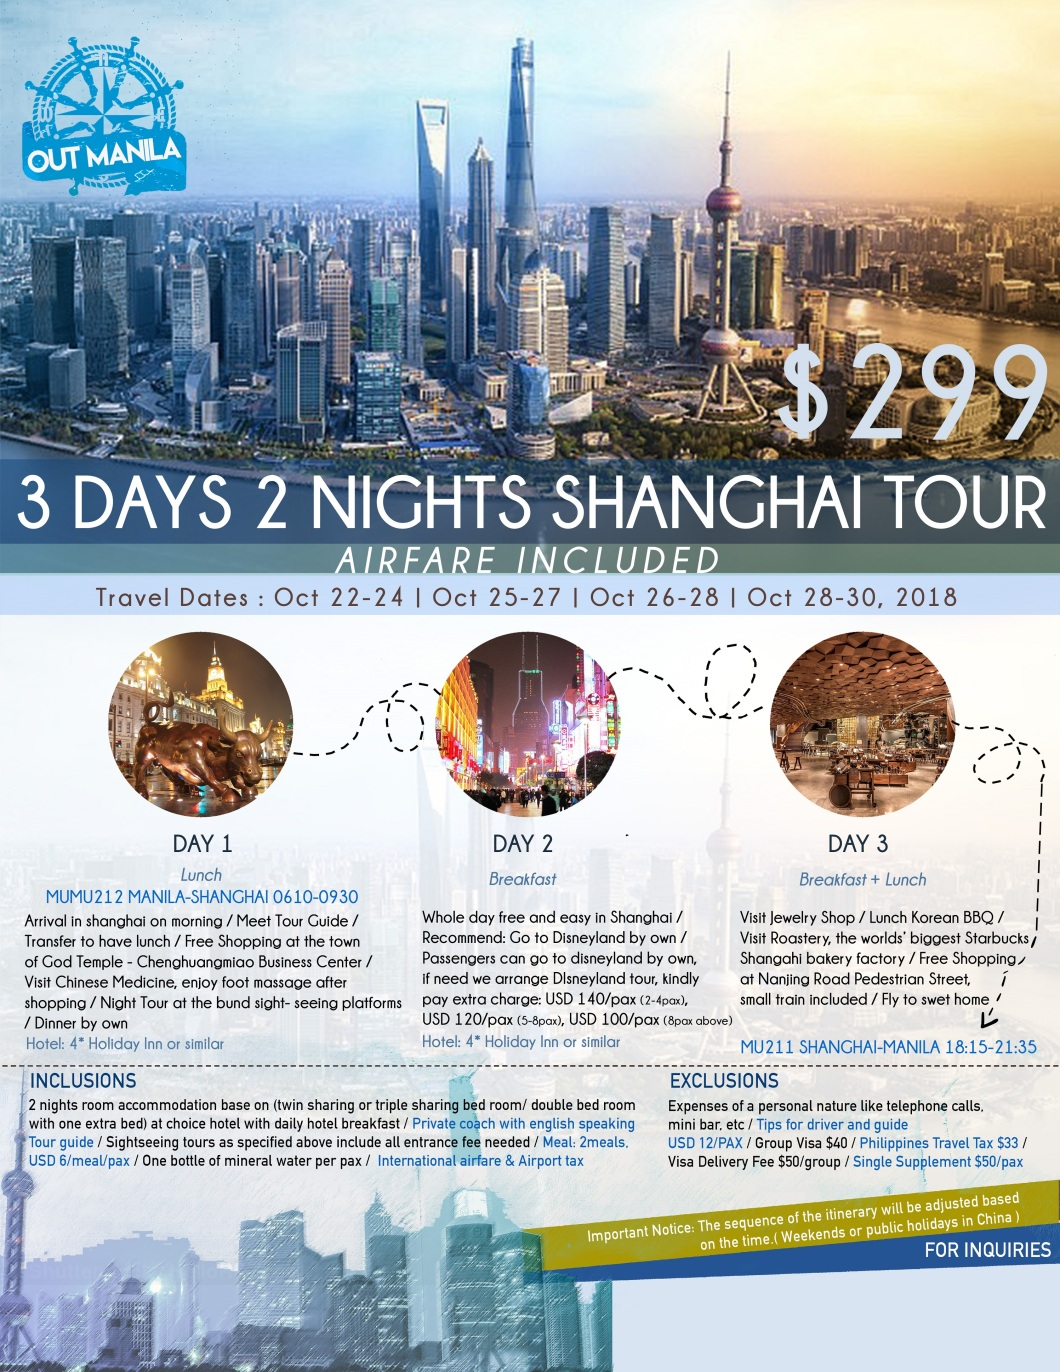 Shanghai China Tour Package from Philippines